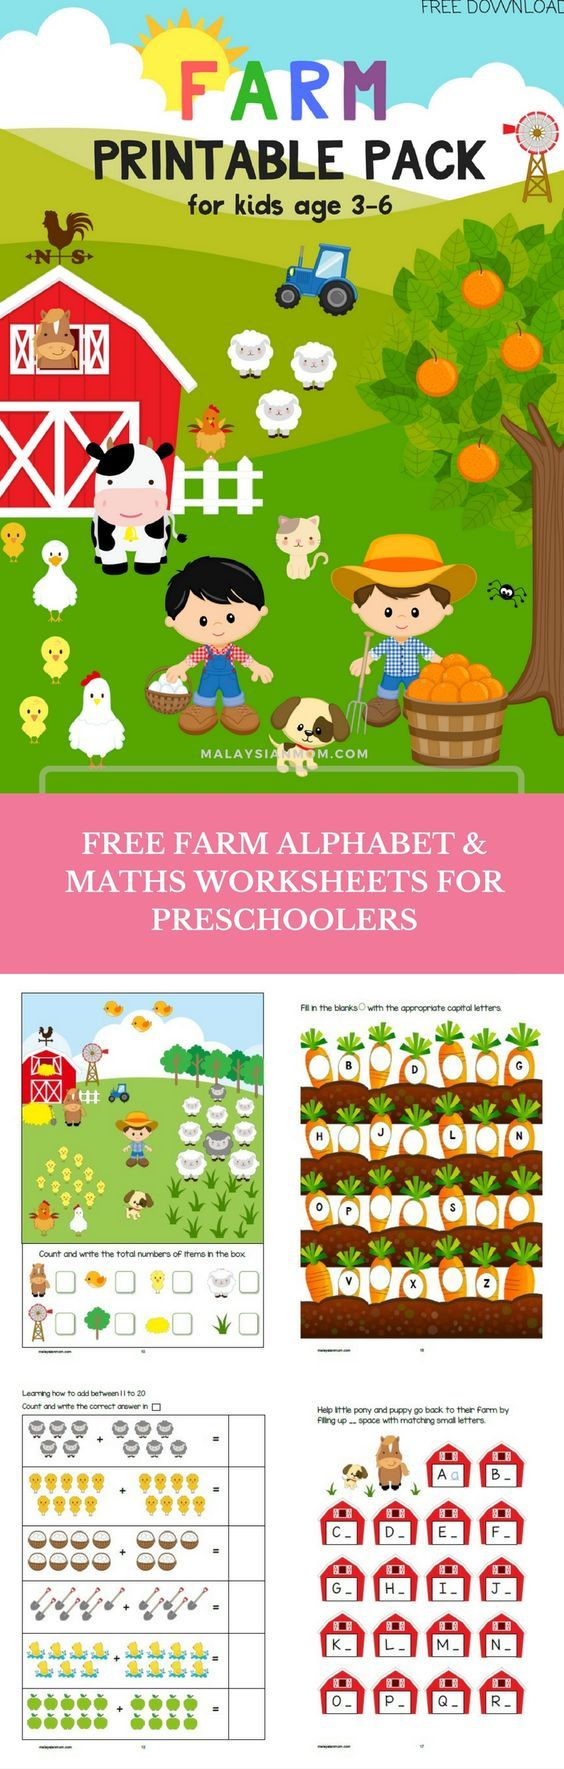 Pencil control worksheet for kids 187 tracing line worksheet for kids - Farm Preschool Theme Activities Crafts Math Printables Literacy Worksheets Ideas